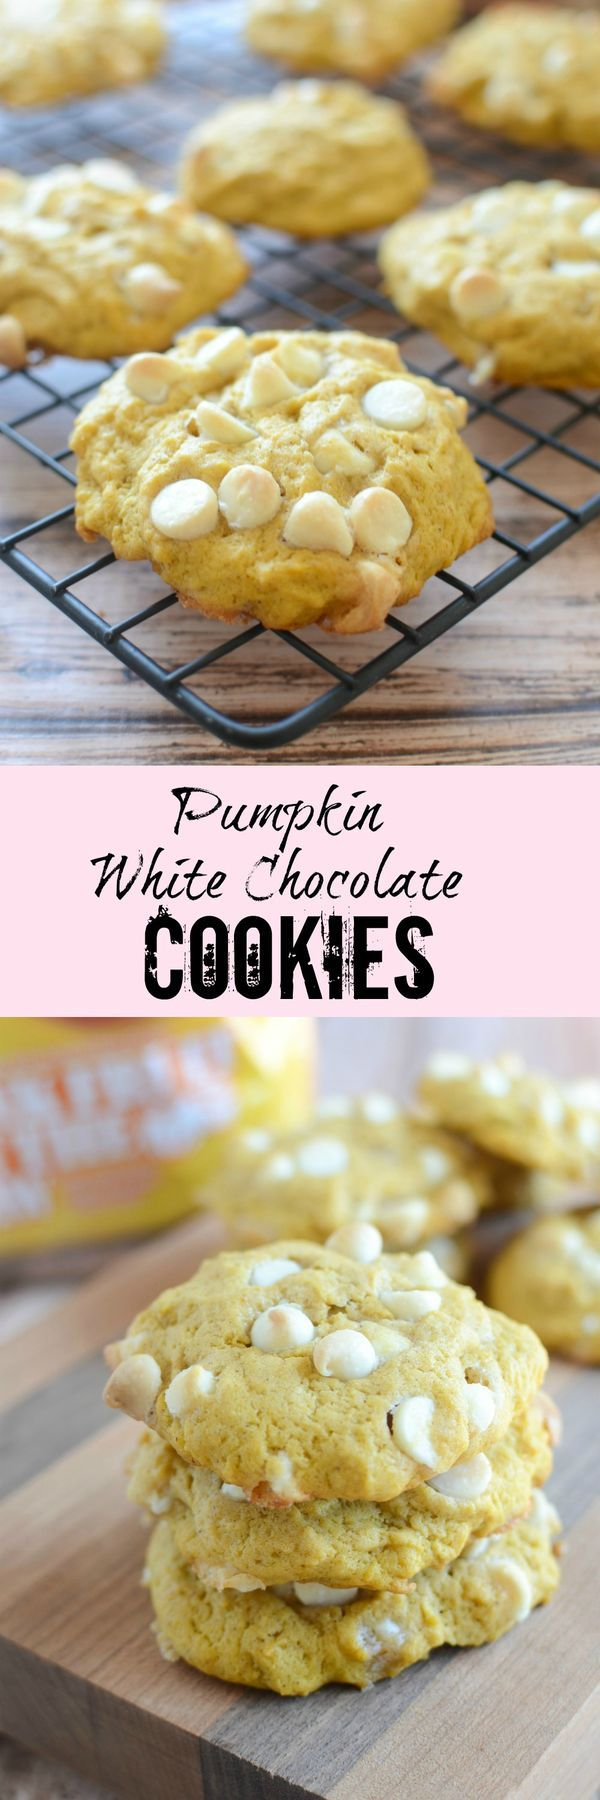 Pumpkin White Chocolate Cookies - the most delicious pumpkin cookies recipe! A must make!